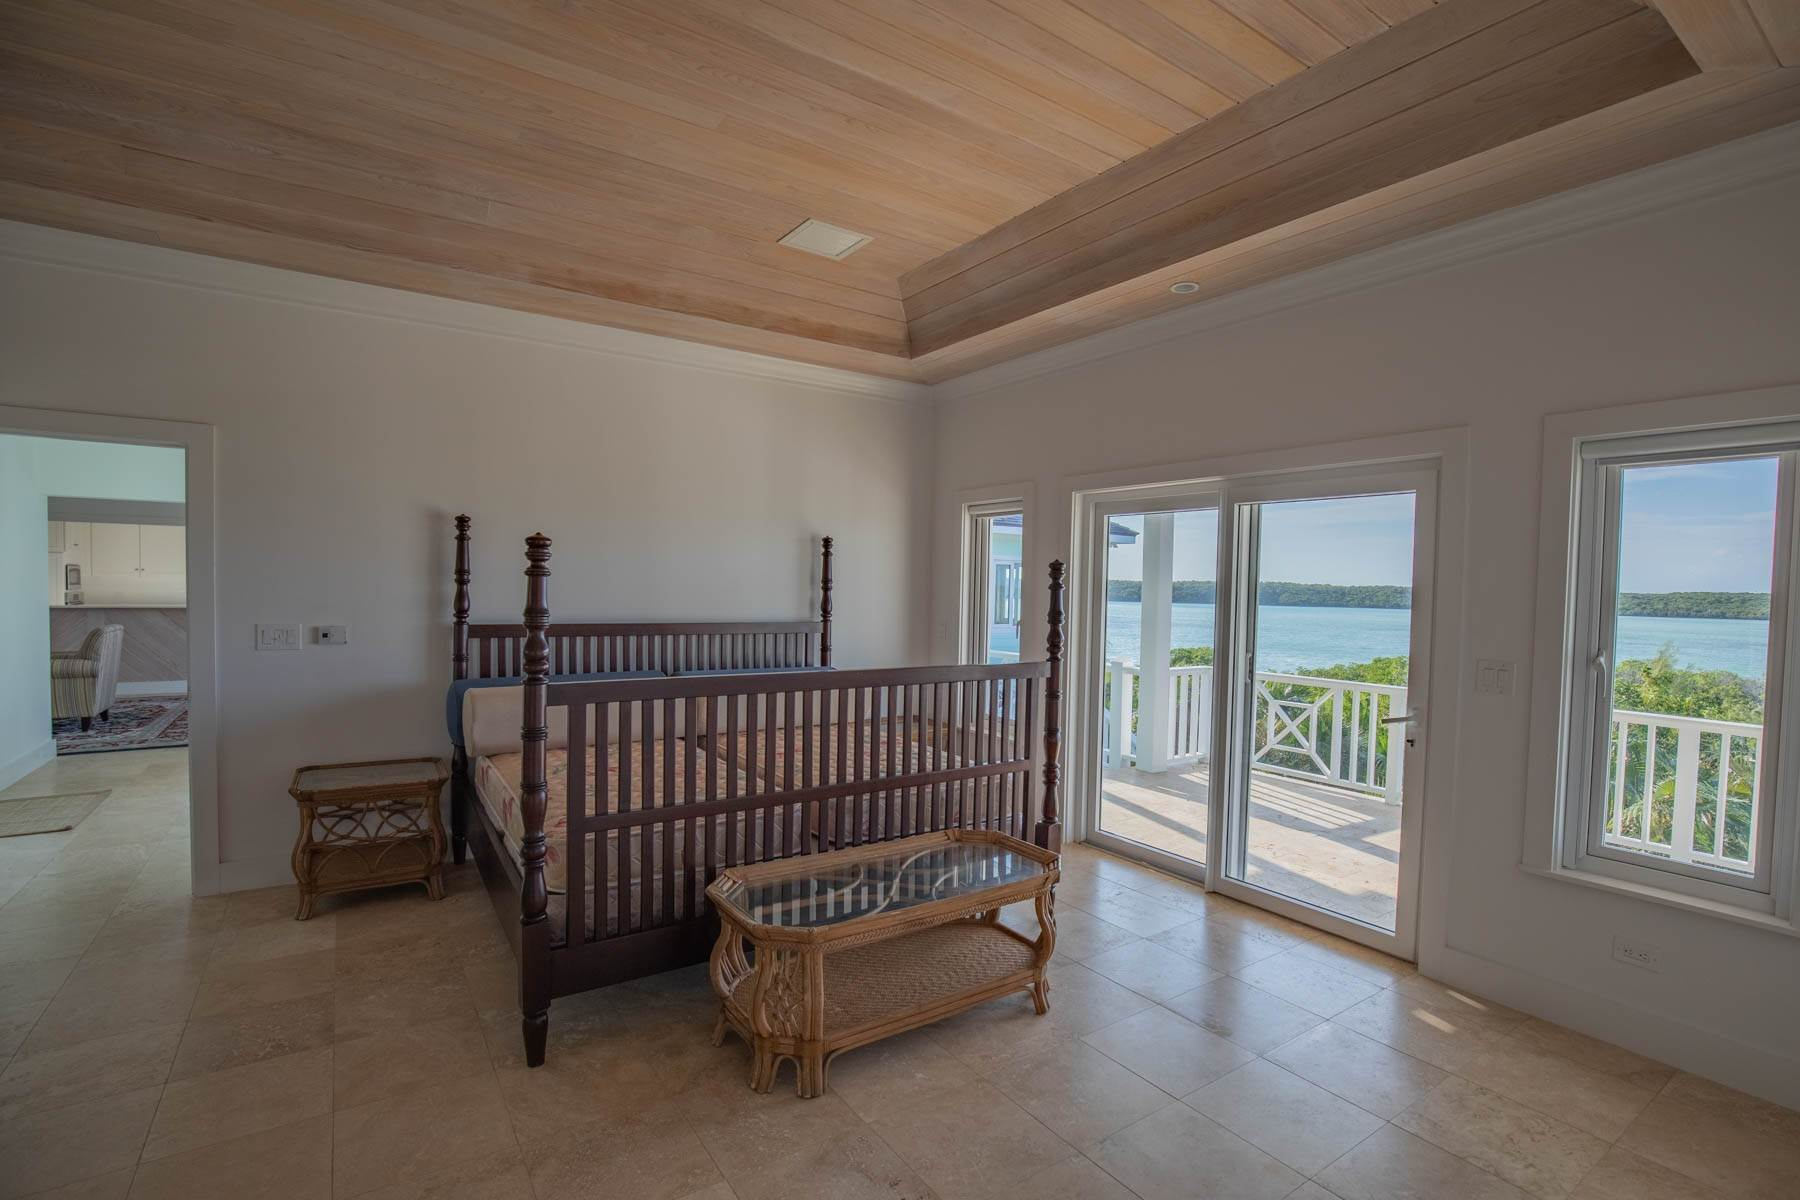 10. Single Family Homes for Sale at Savannah Sound Home - Windermere Island - MLS 44478 Windermere Island, Eleuthera, Bahamas